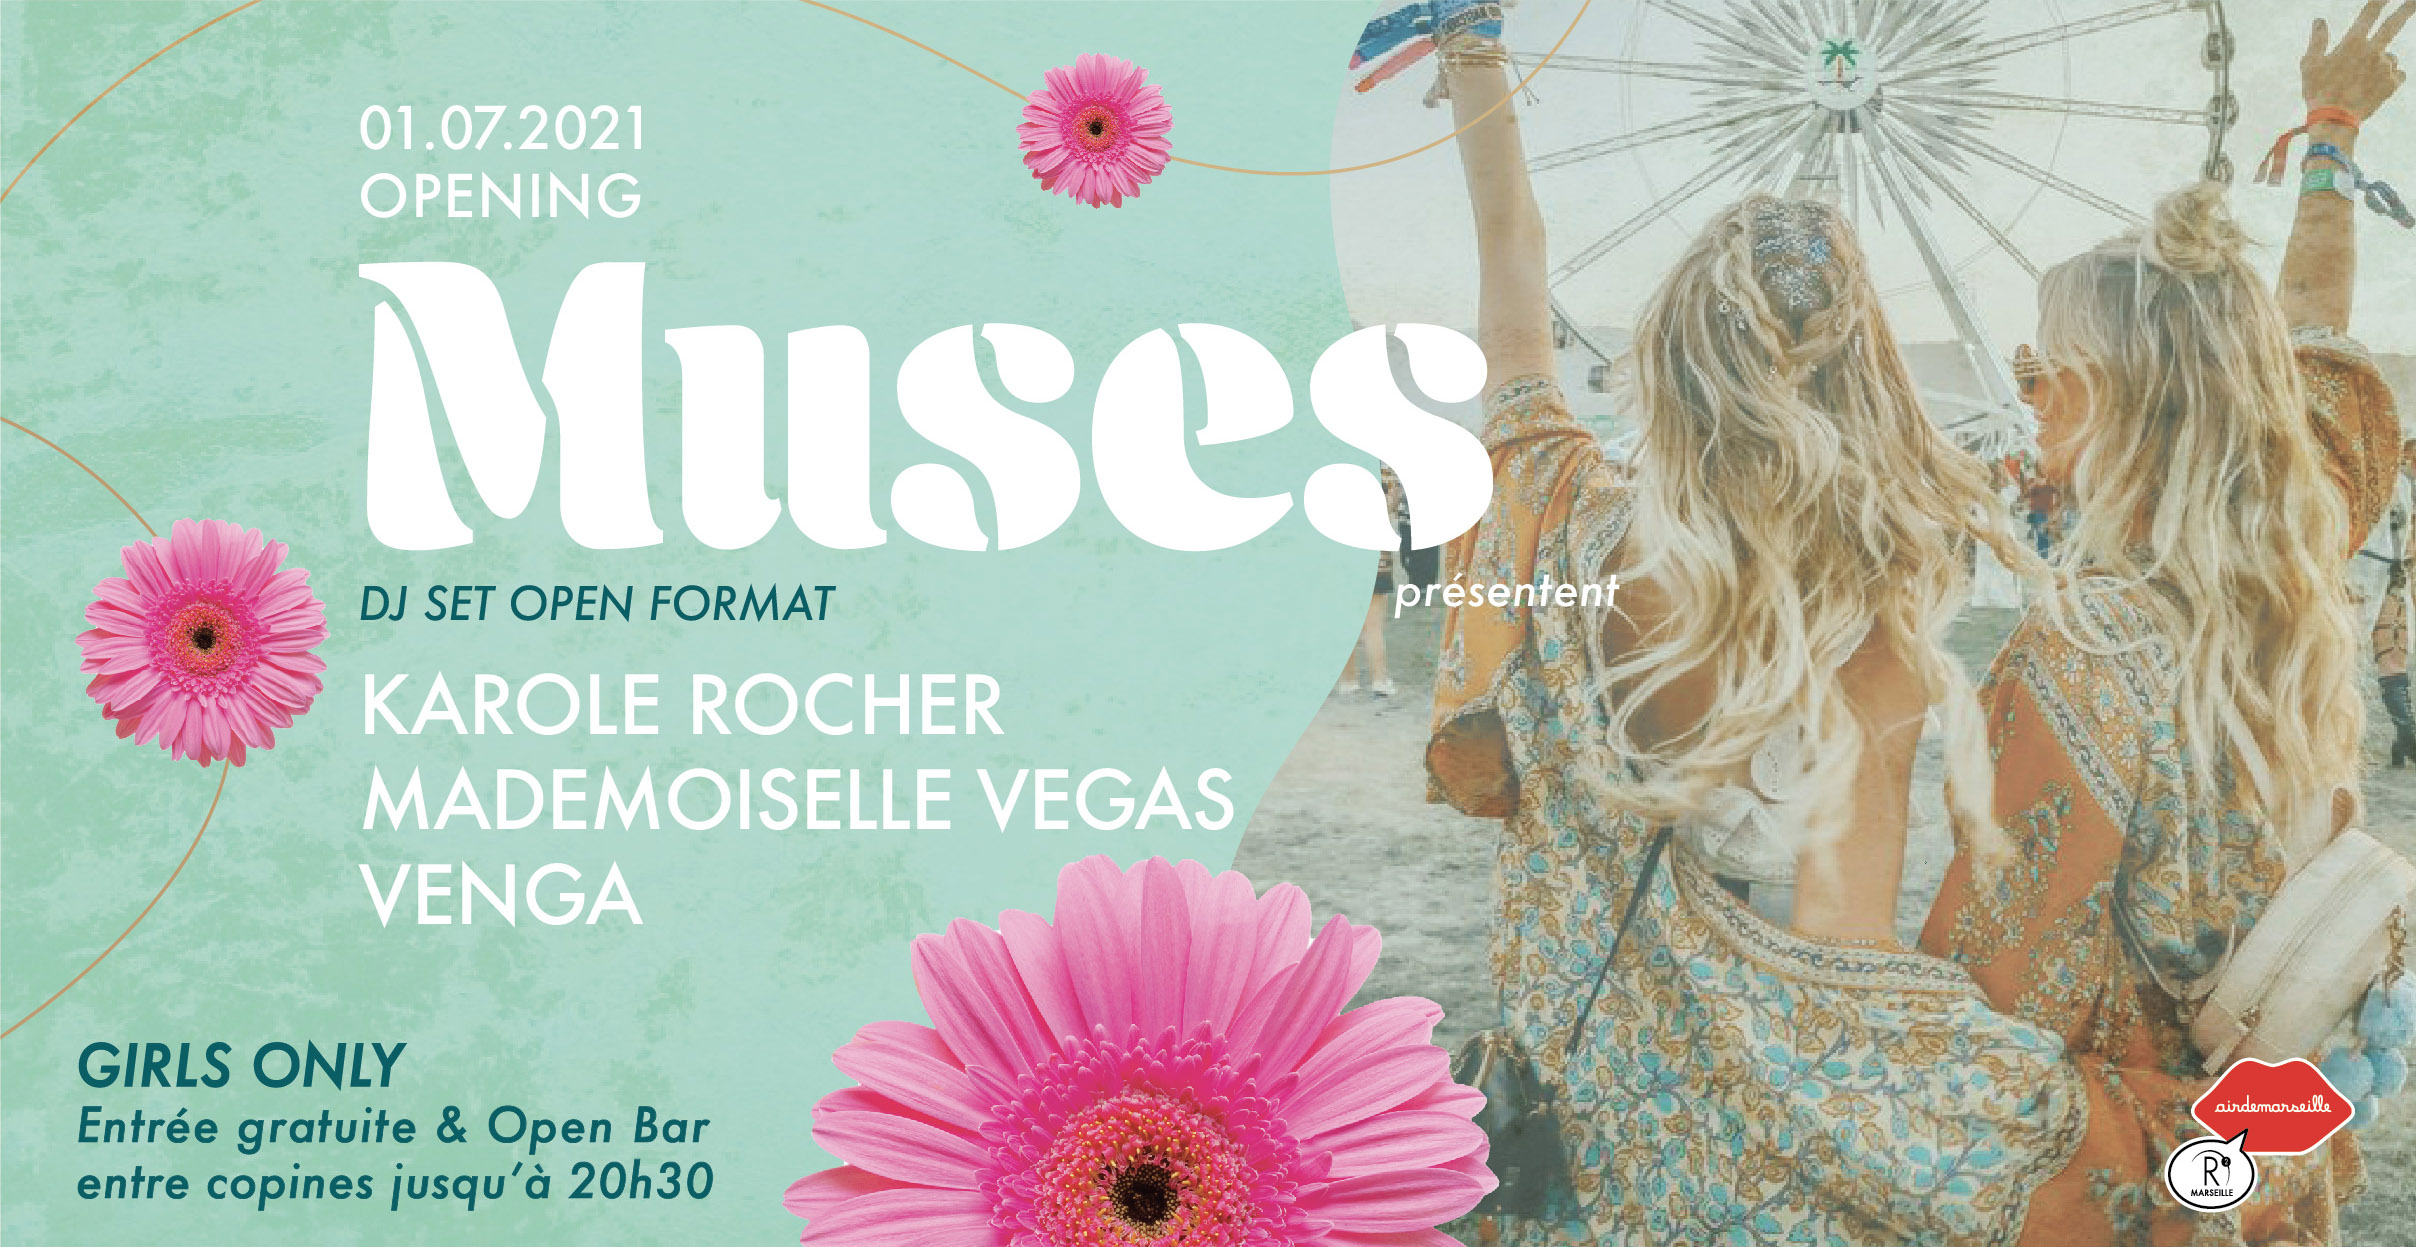 R2 ROOFTOP -MUSES OPENING -KAROLE ROCHER-MADEMOISELLE VEGAS